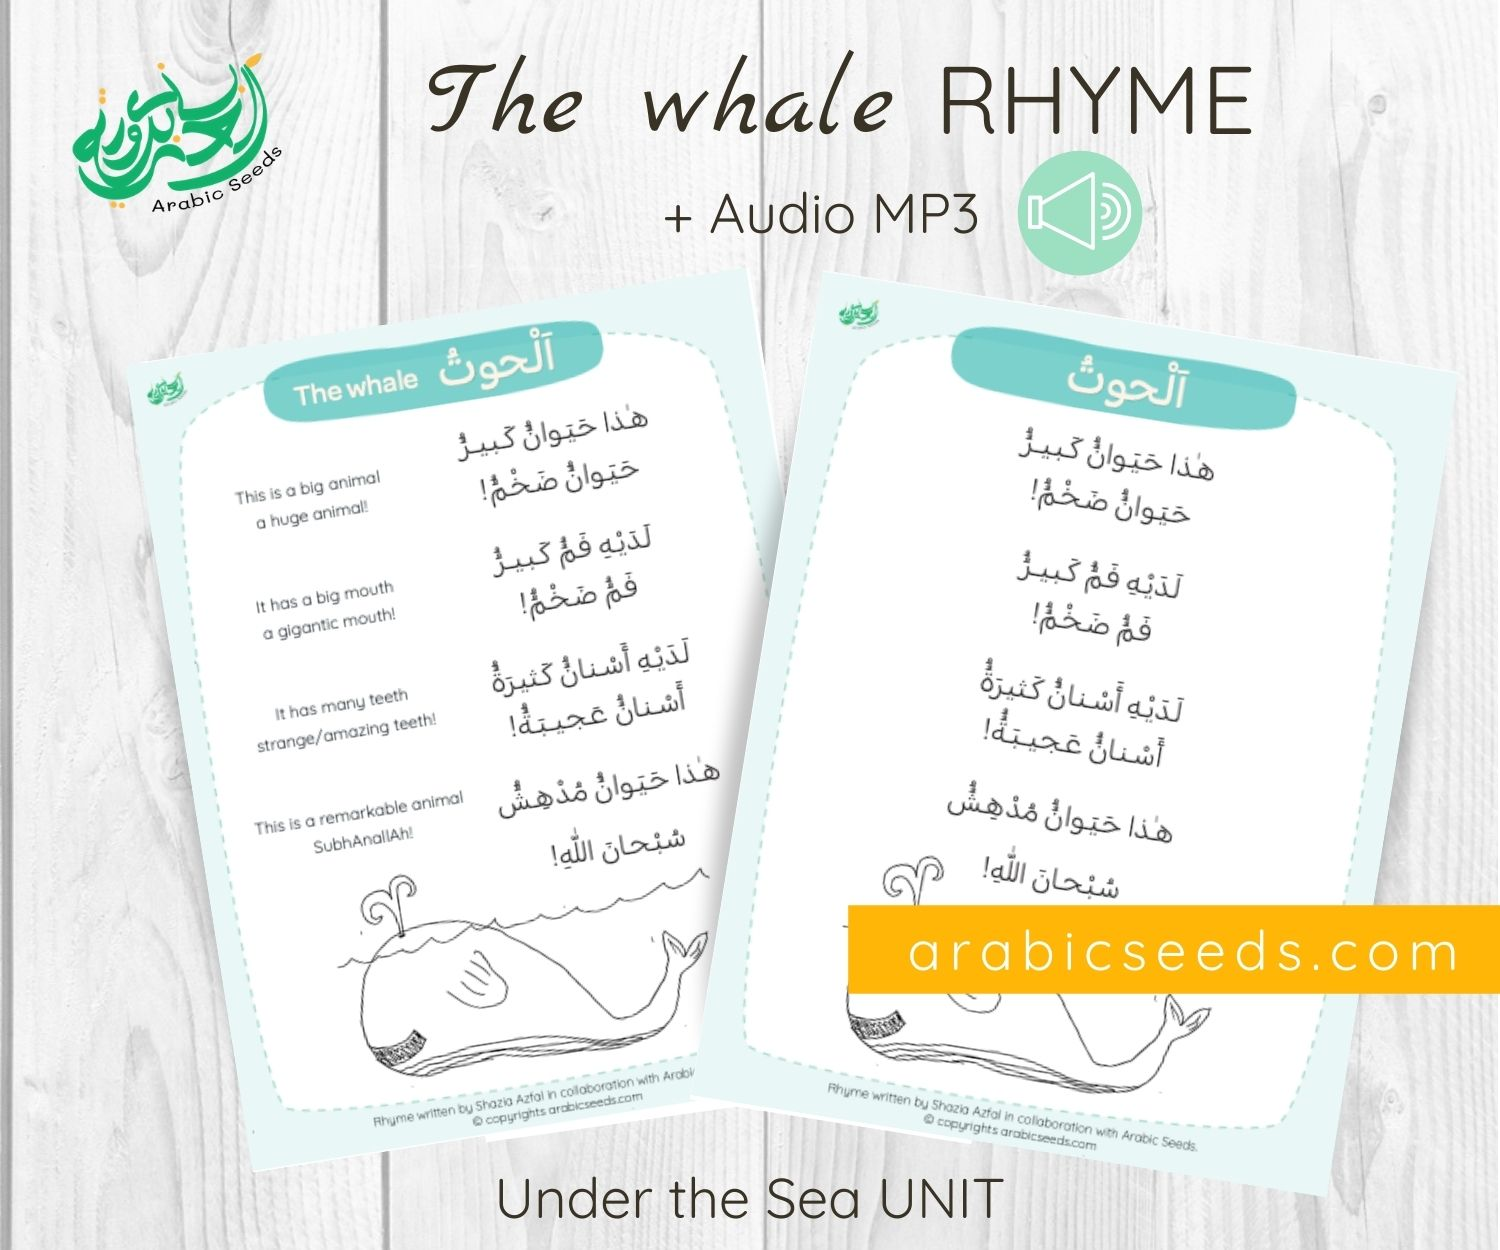 The whale Arabic rhyme - printable and audio - under the sea unit - Arabic Seeds